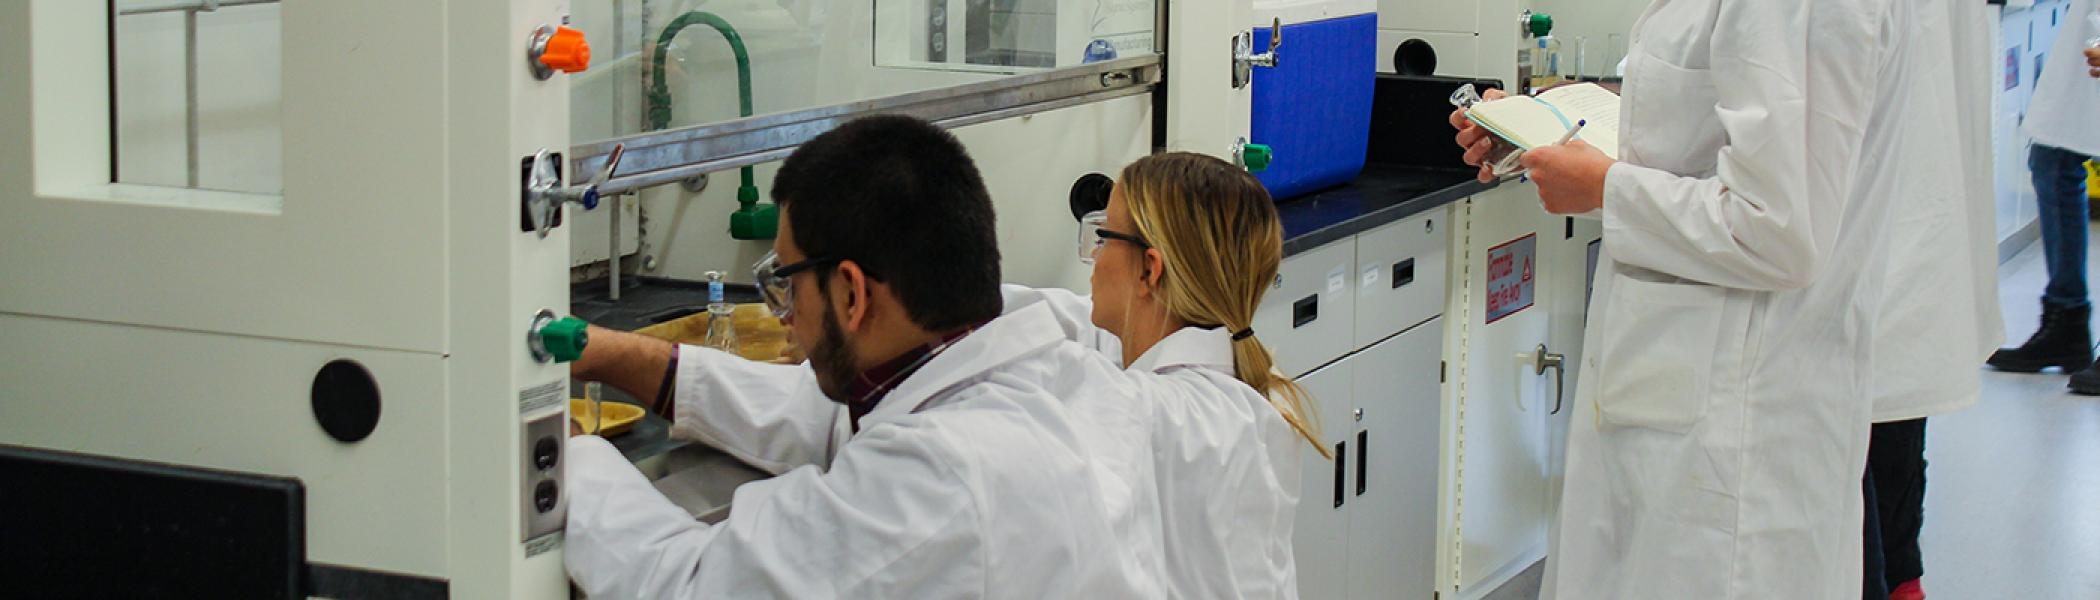 2 Chemistry students kneeling at a chemistry lab fumehood getting chemicals, wearing white labcoats and safety goggles, a 3rd student waits behind